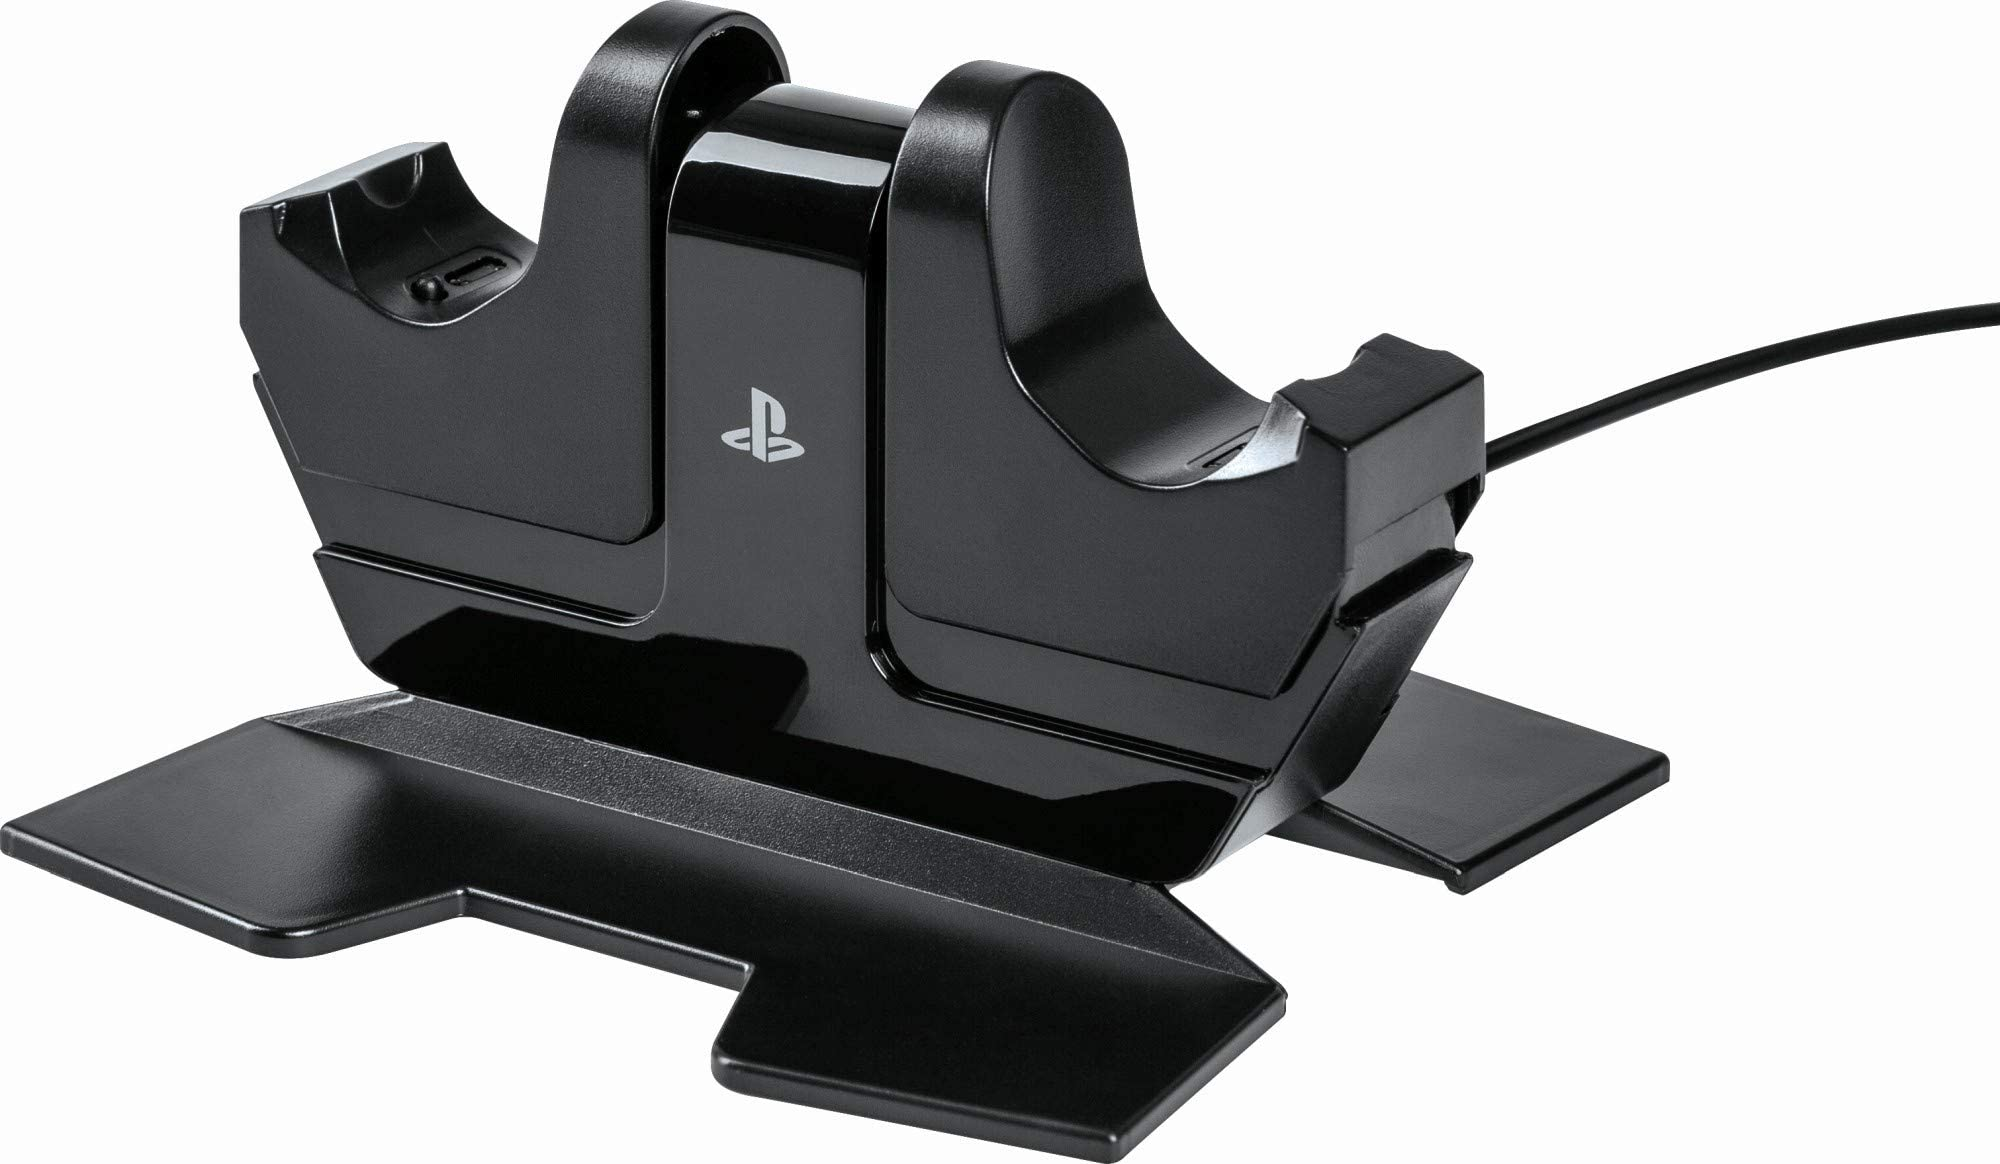 Amazon.com: PowerA DualShock 4 Charging Station for ...